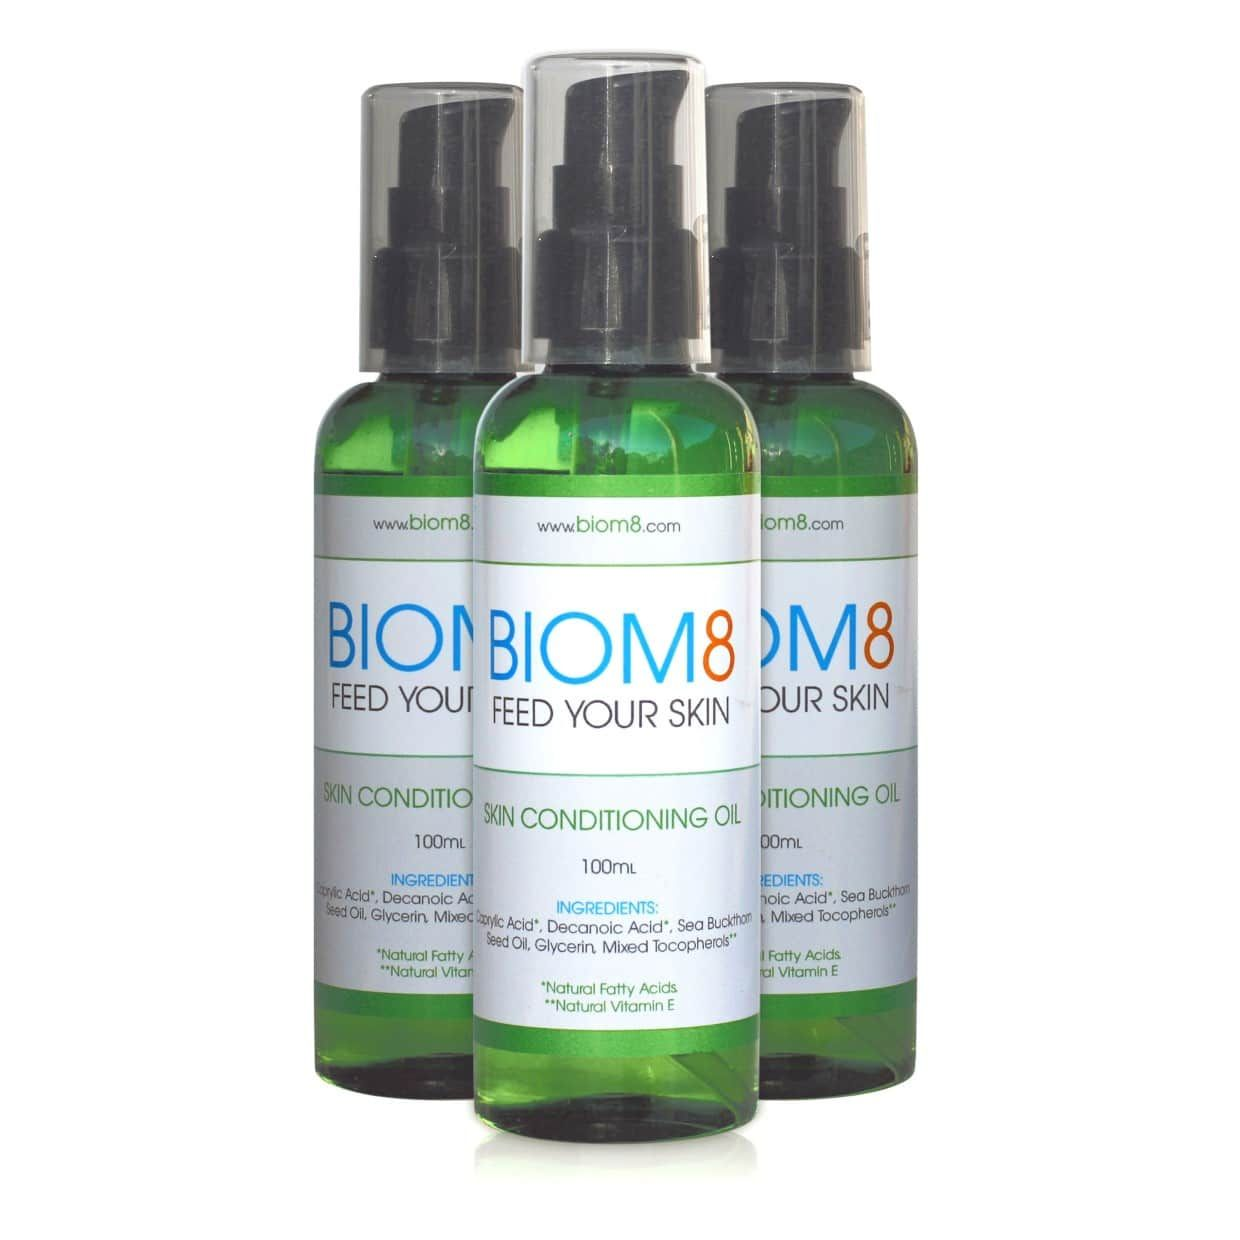 Skin Conditioning Oil Oils for skin, Fungus treatment